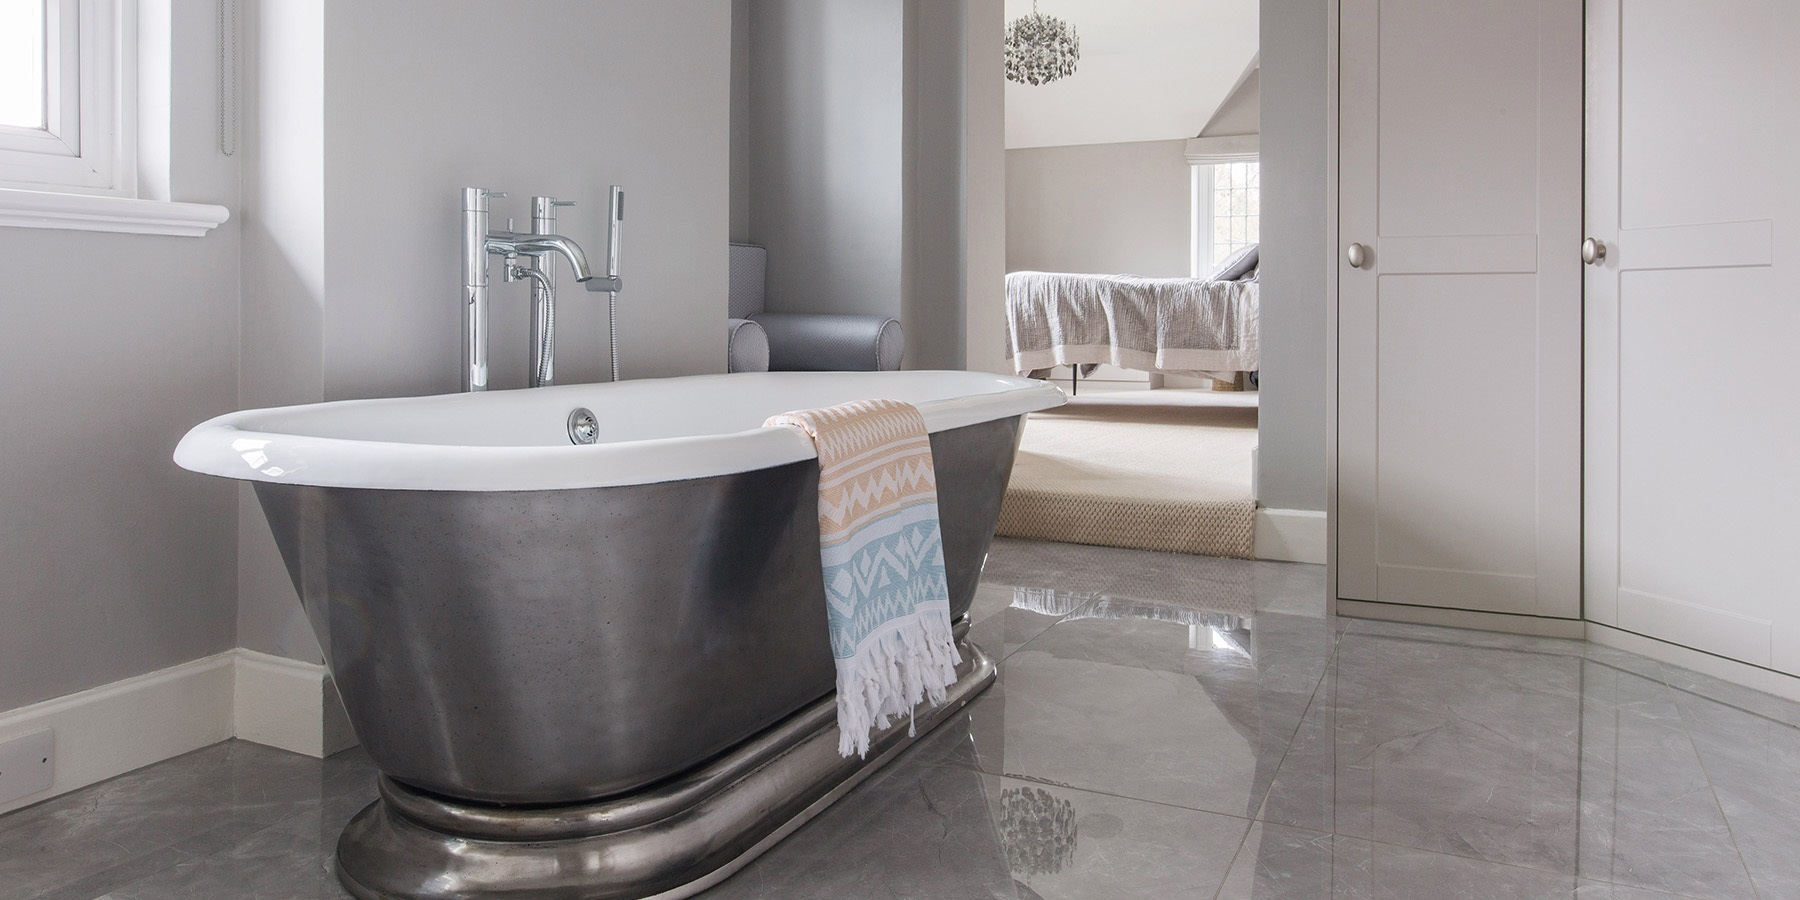 Luxury Bathroom Design - Beautiful handmade Hurlingham cast iron roll top bath and dressing room design.